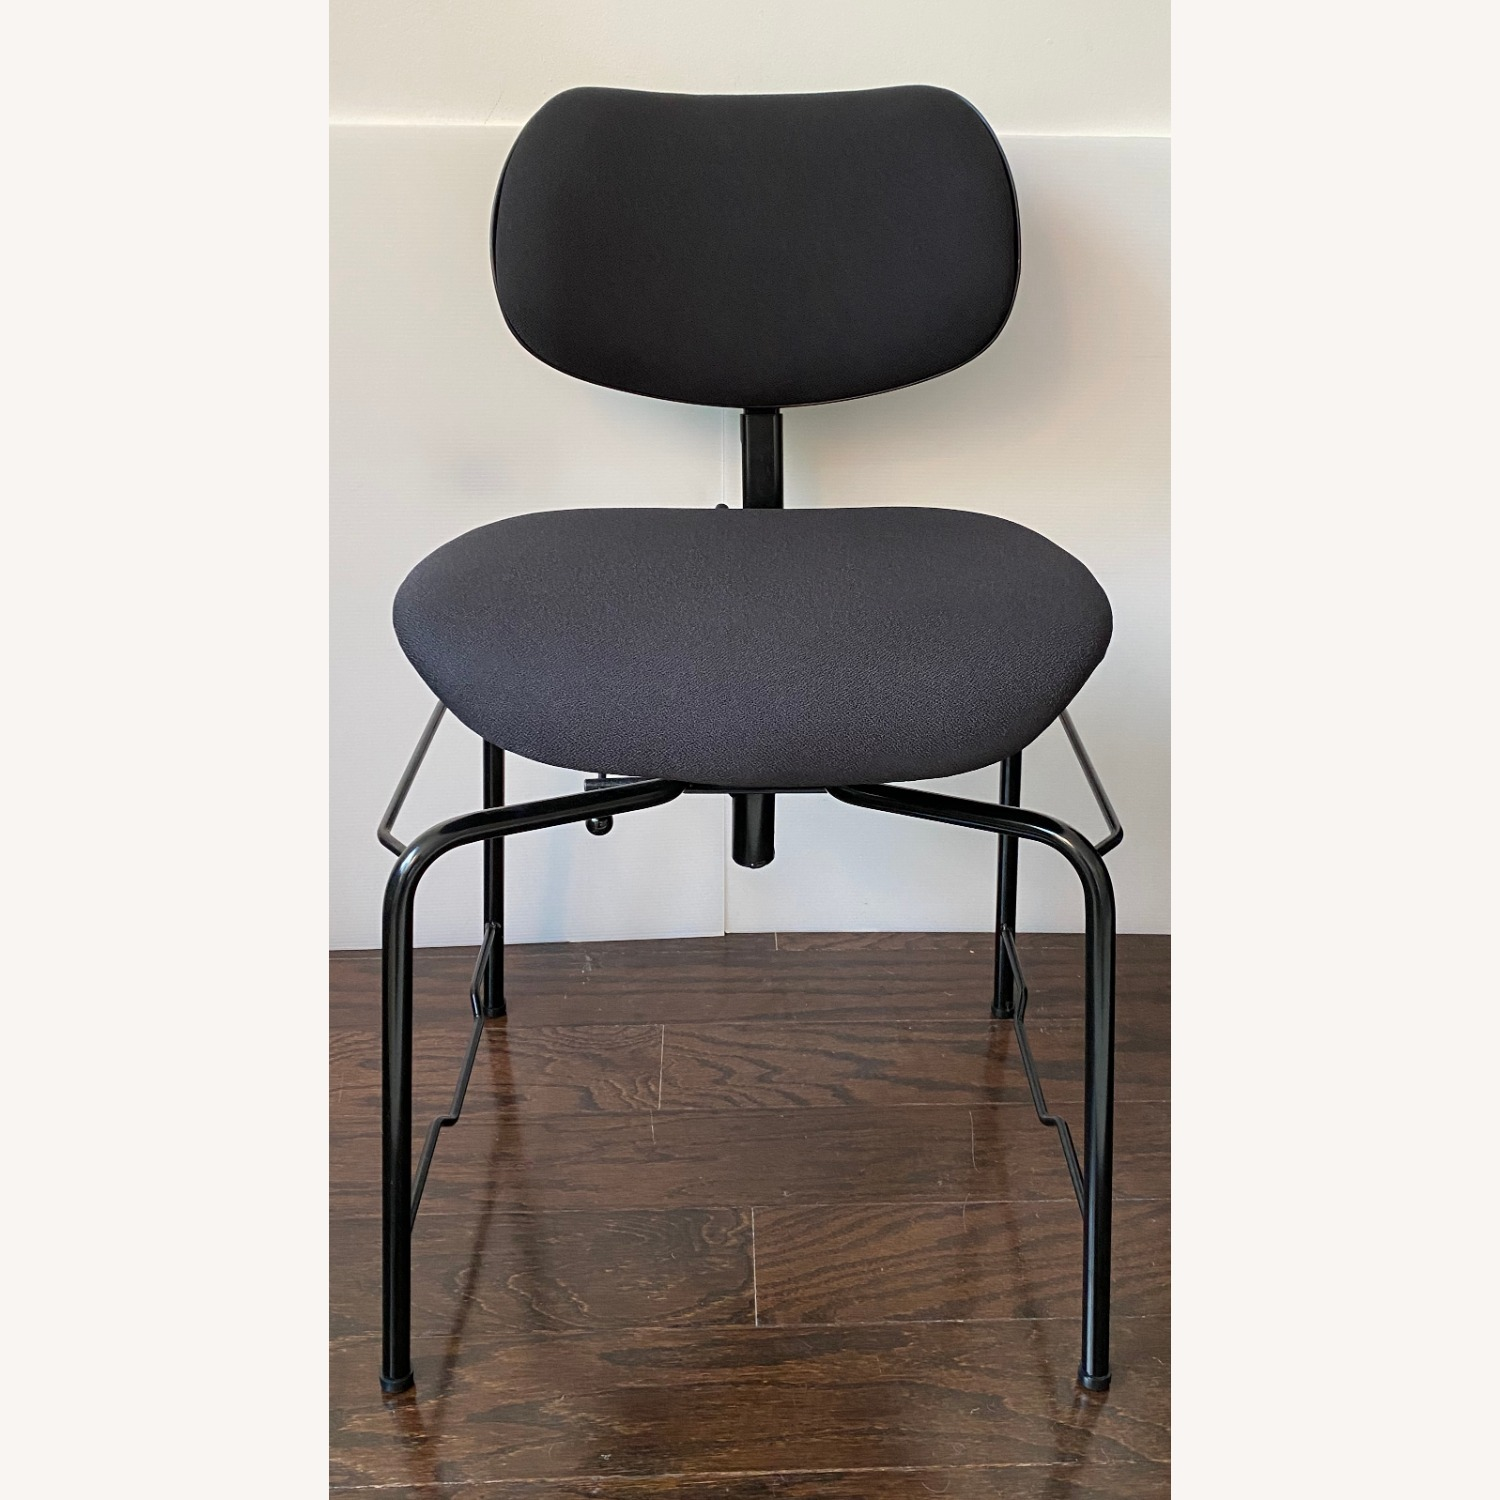 "Wilde + Spieth ""Orchestra"" Chair Black - image-16"